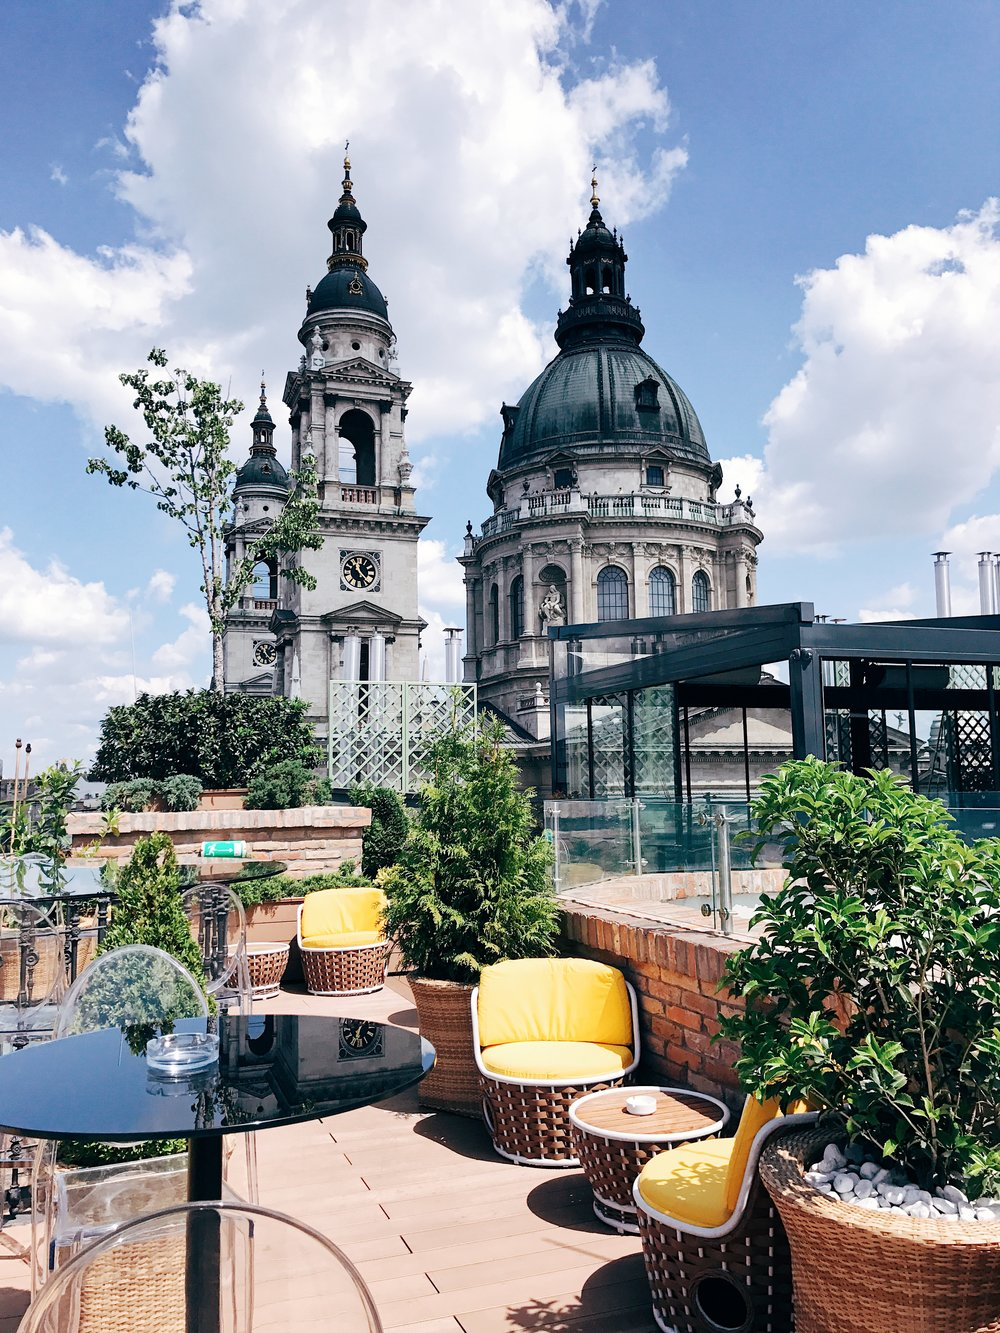 The view of St. Stephen's Basilica from the Aria Hotel rooftop